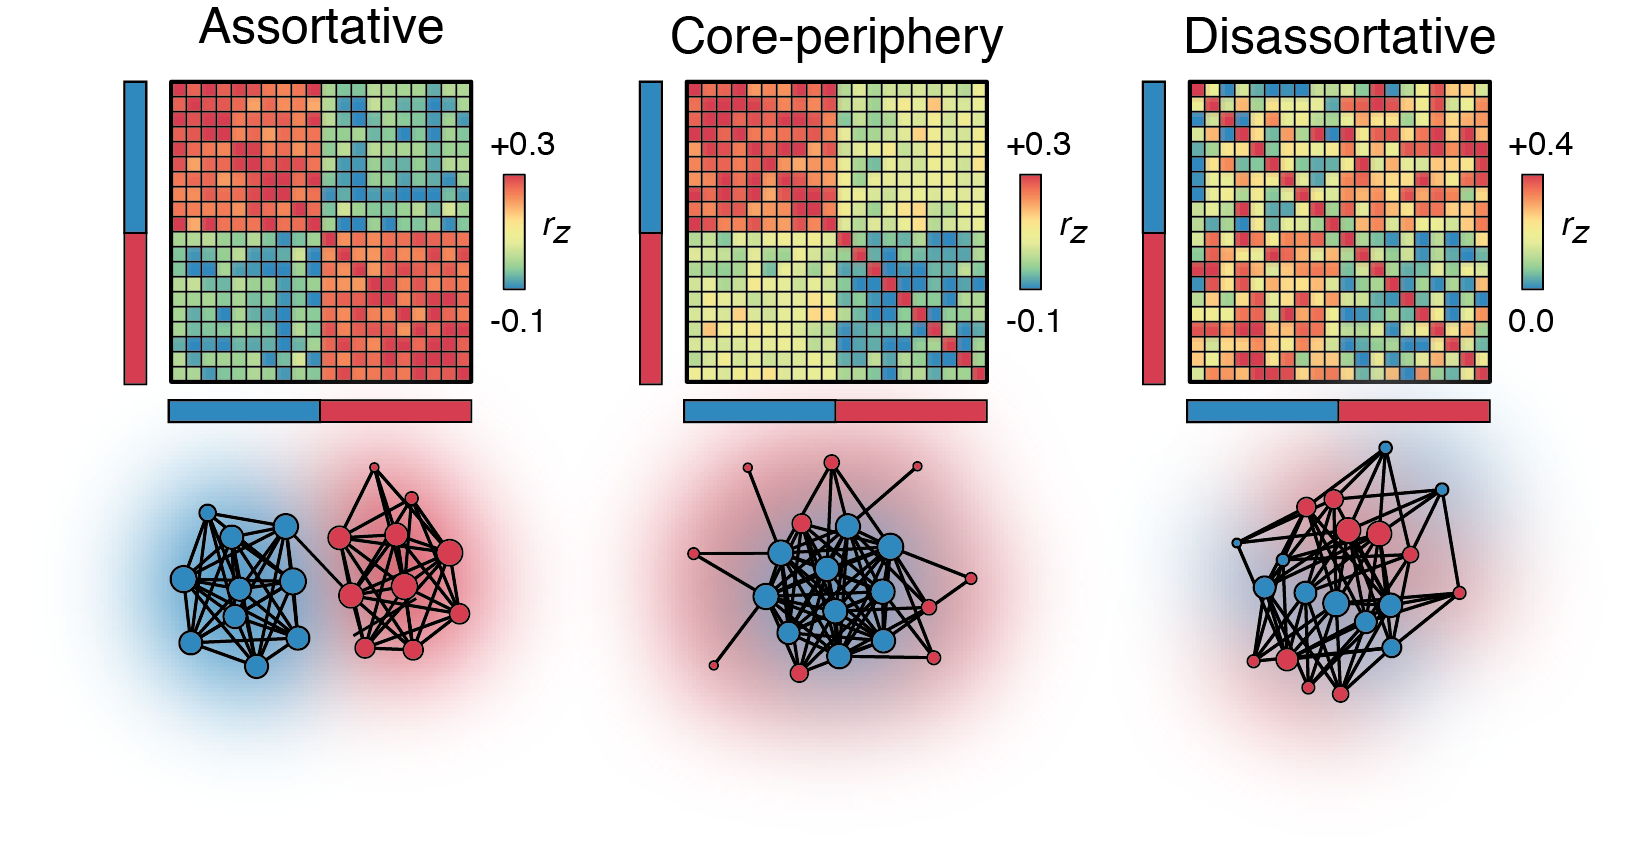 Matlab code for fitting weighted stochastic blockmodel. [ Link to code ] If you use the code, please cite:  Betzel, R. F., Medaglia, J. D., & Bassett, D. S. (2018). Diversity of meso-scale architecture in human and non-human connectomes.  Nature communications ,  9 (1), 346. [ Link to paper ]  Betzel, R. F., Bertolero, M. A., & Bassett, D. S. (2018). Non-assortative community structure in resting and task-evoked functional brain networks.  bioRxiv , 355016. [ Link to paper ]  Aicher, C., Jacobs, A. Z., & Clauset, A. (2014). Learning latent block structure in weighted networks.  Journal of Complex Networks ,  3 (2), 221-248. [ Link to paper ,  Link to toolbox ]